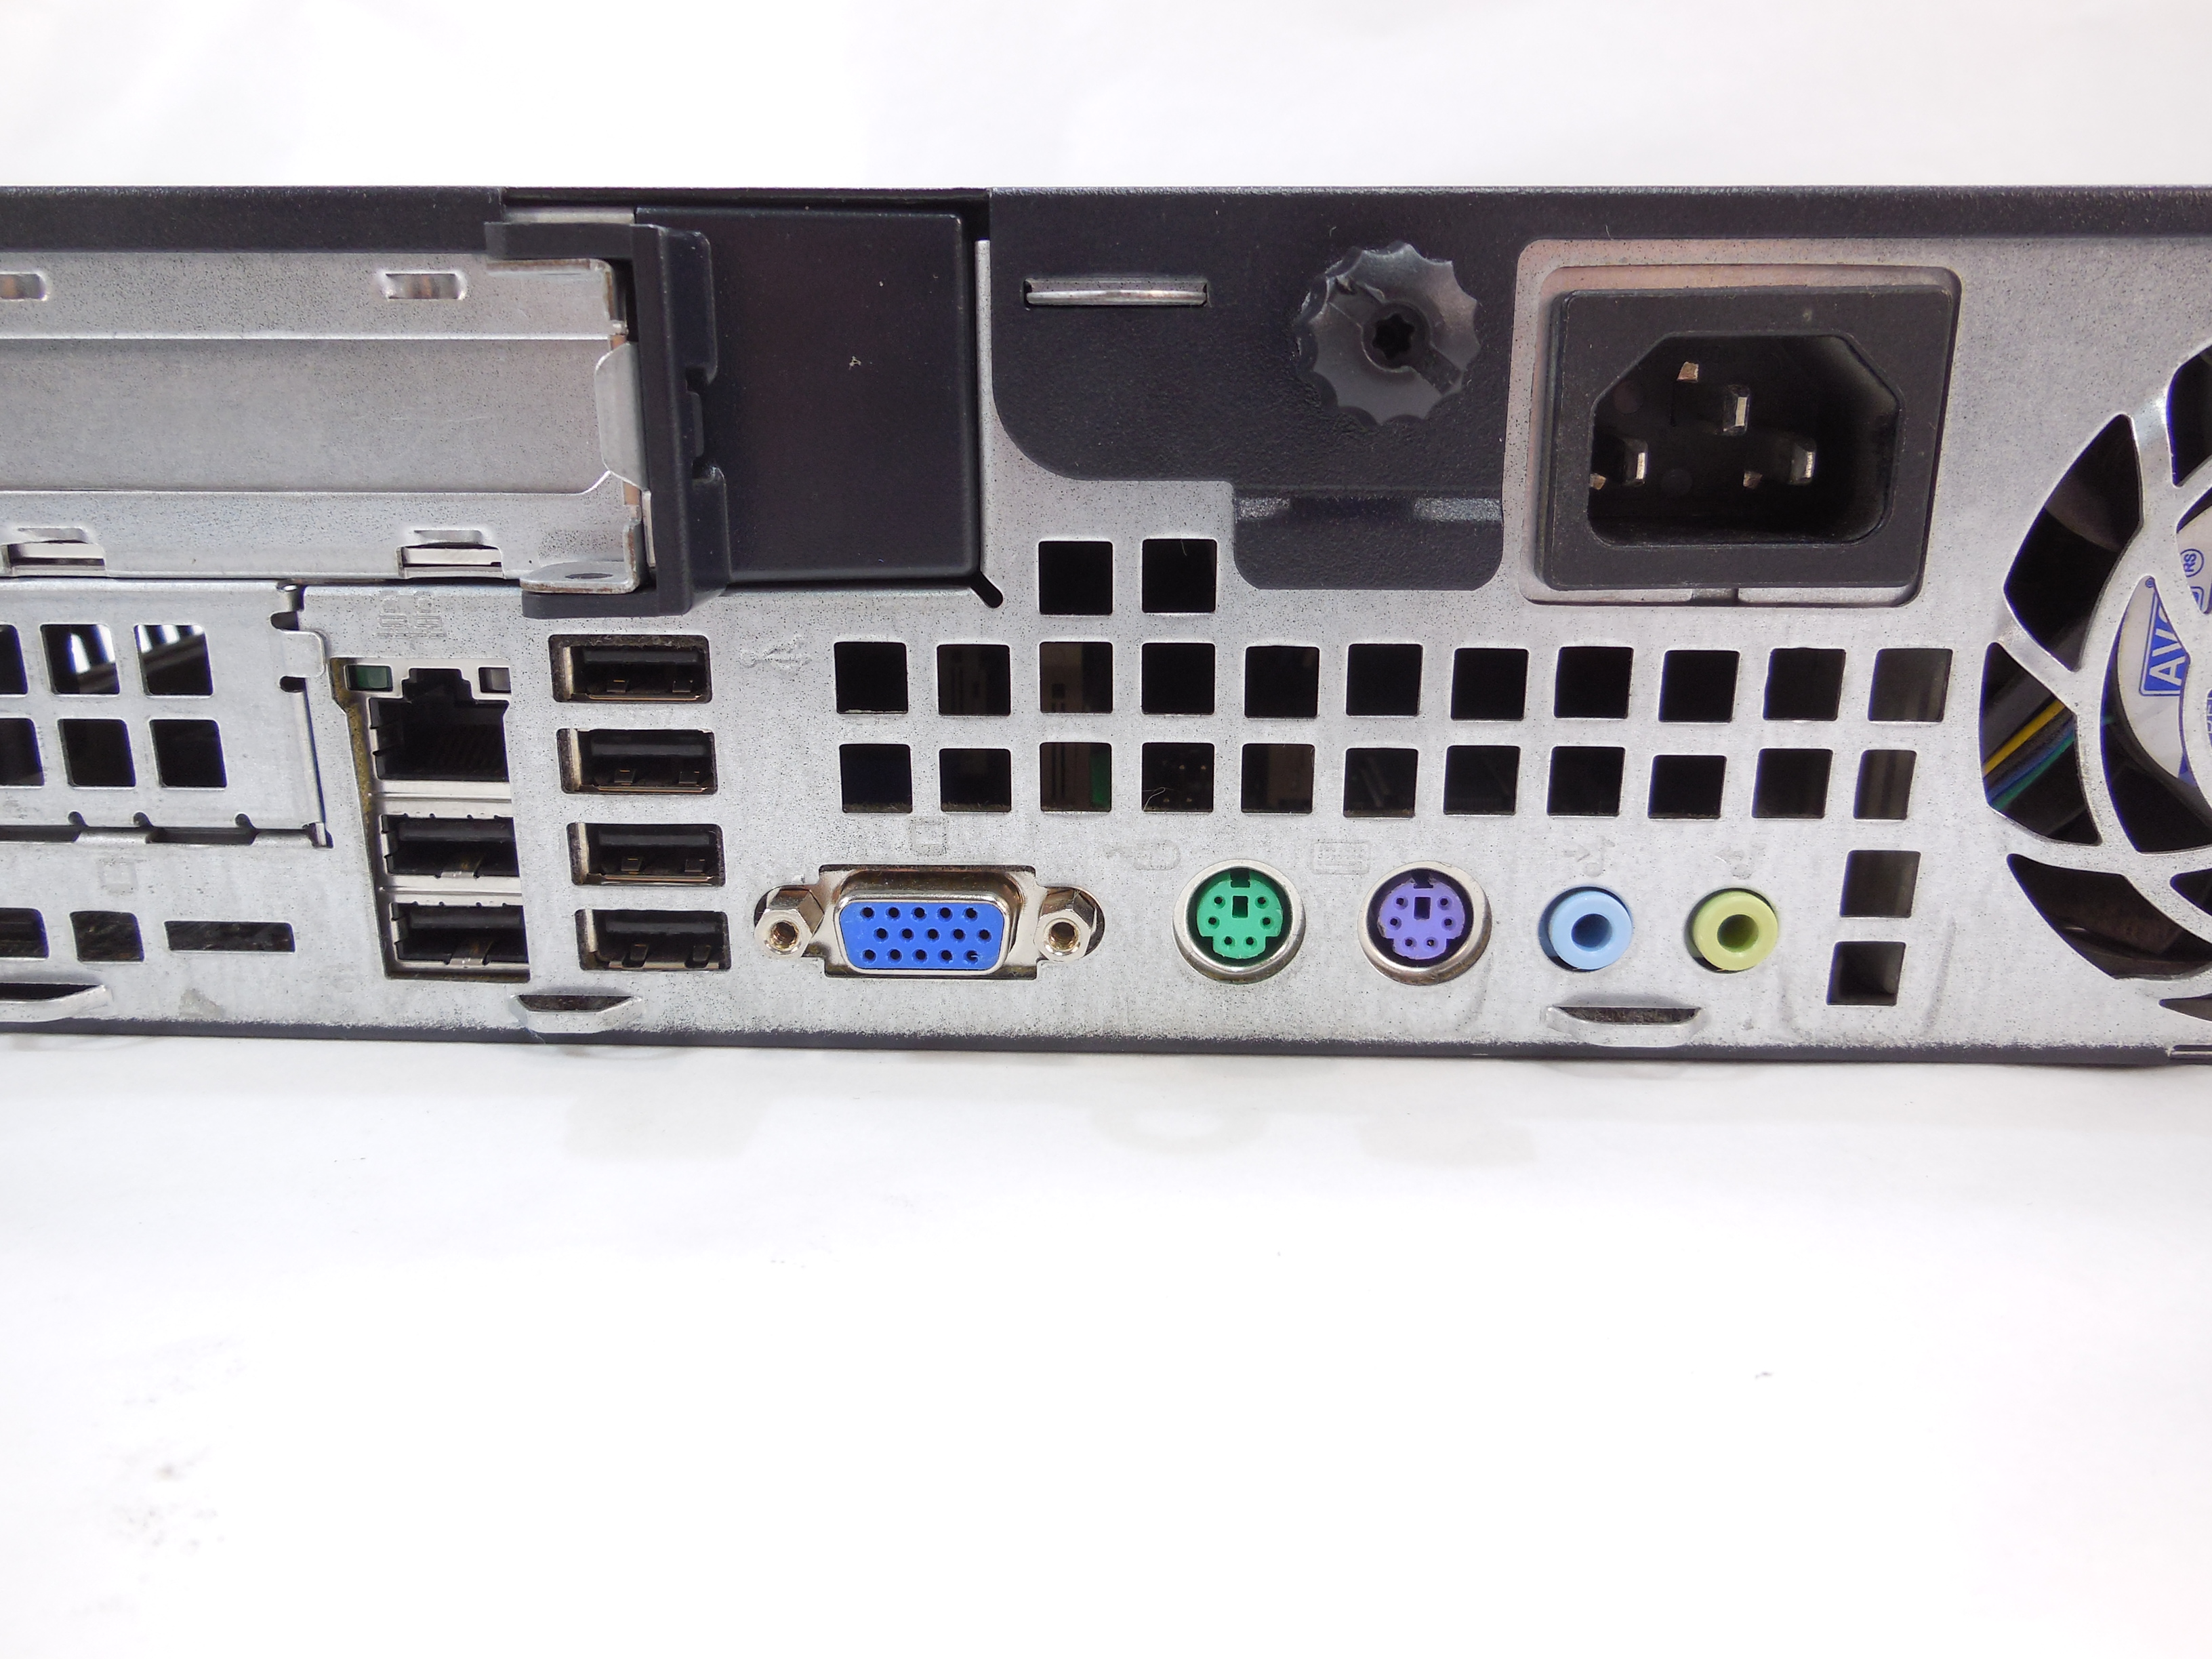 Комп. HP DC7700p Intel Core 2 DUo E6300 1.86GHz - Pic n 282867